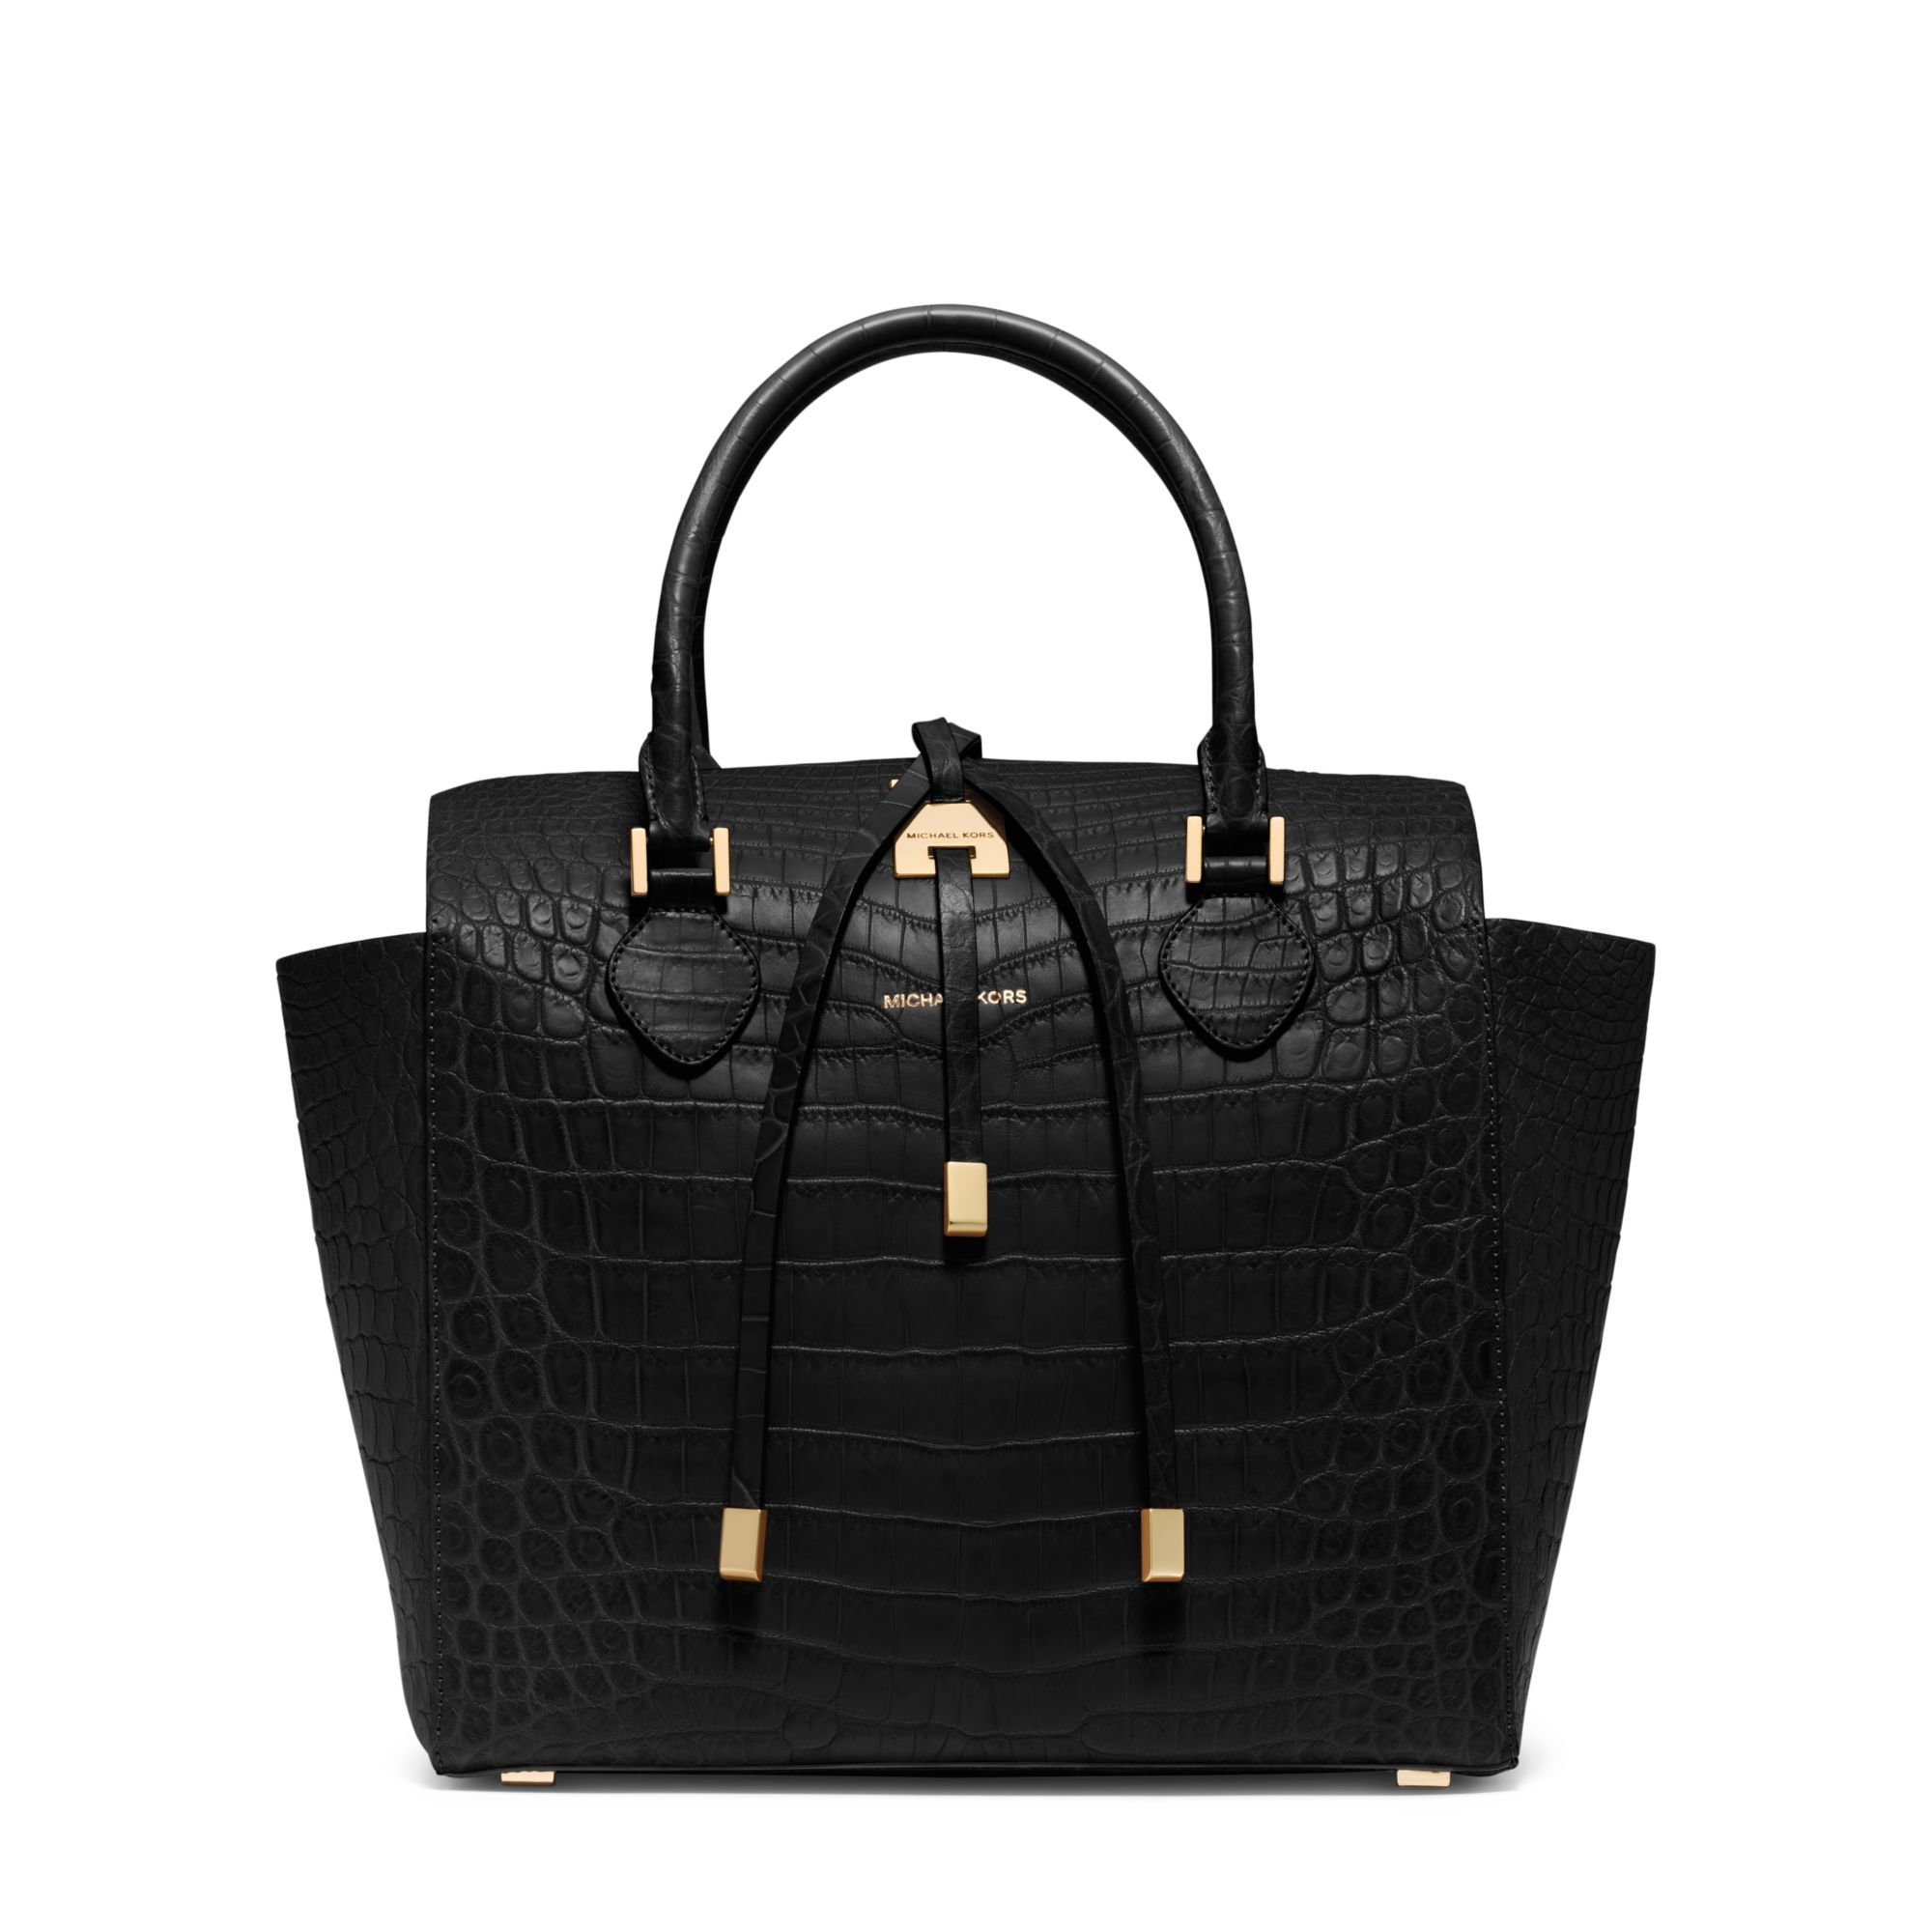 2564fc58be9d Black Tote Michael Kors | Stanford Center for Opportunity Policy in ...